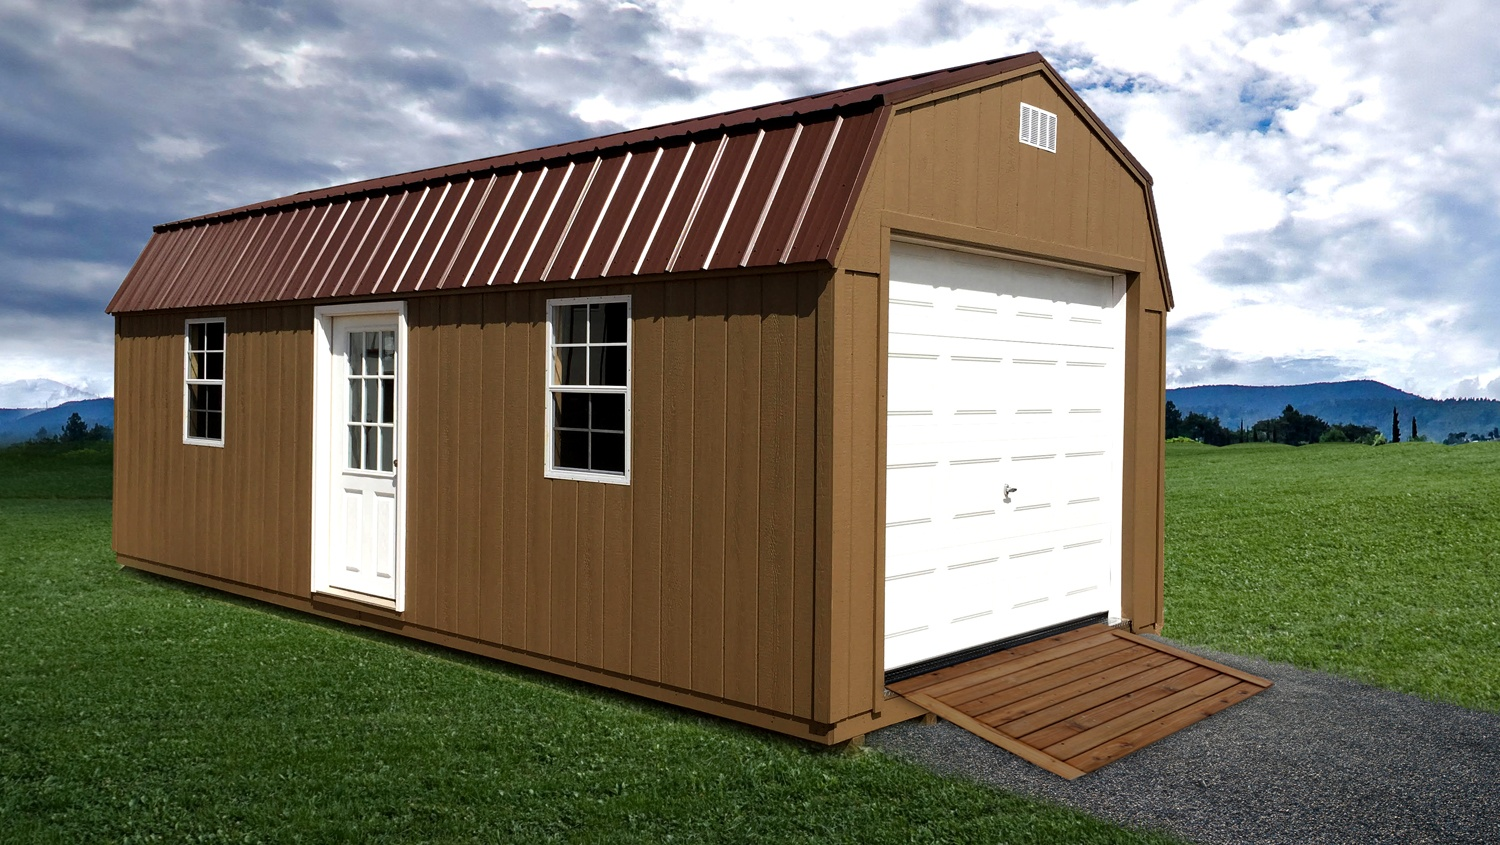 Pre-Built Garages - Single Stall High Barn w/ Metal Roof